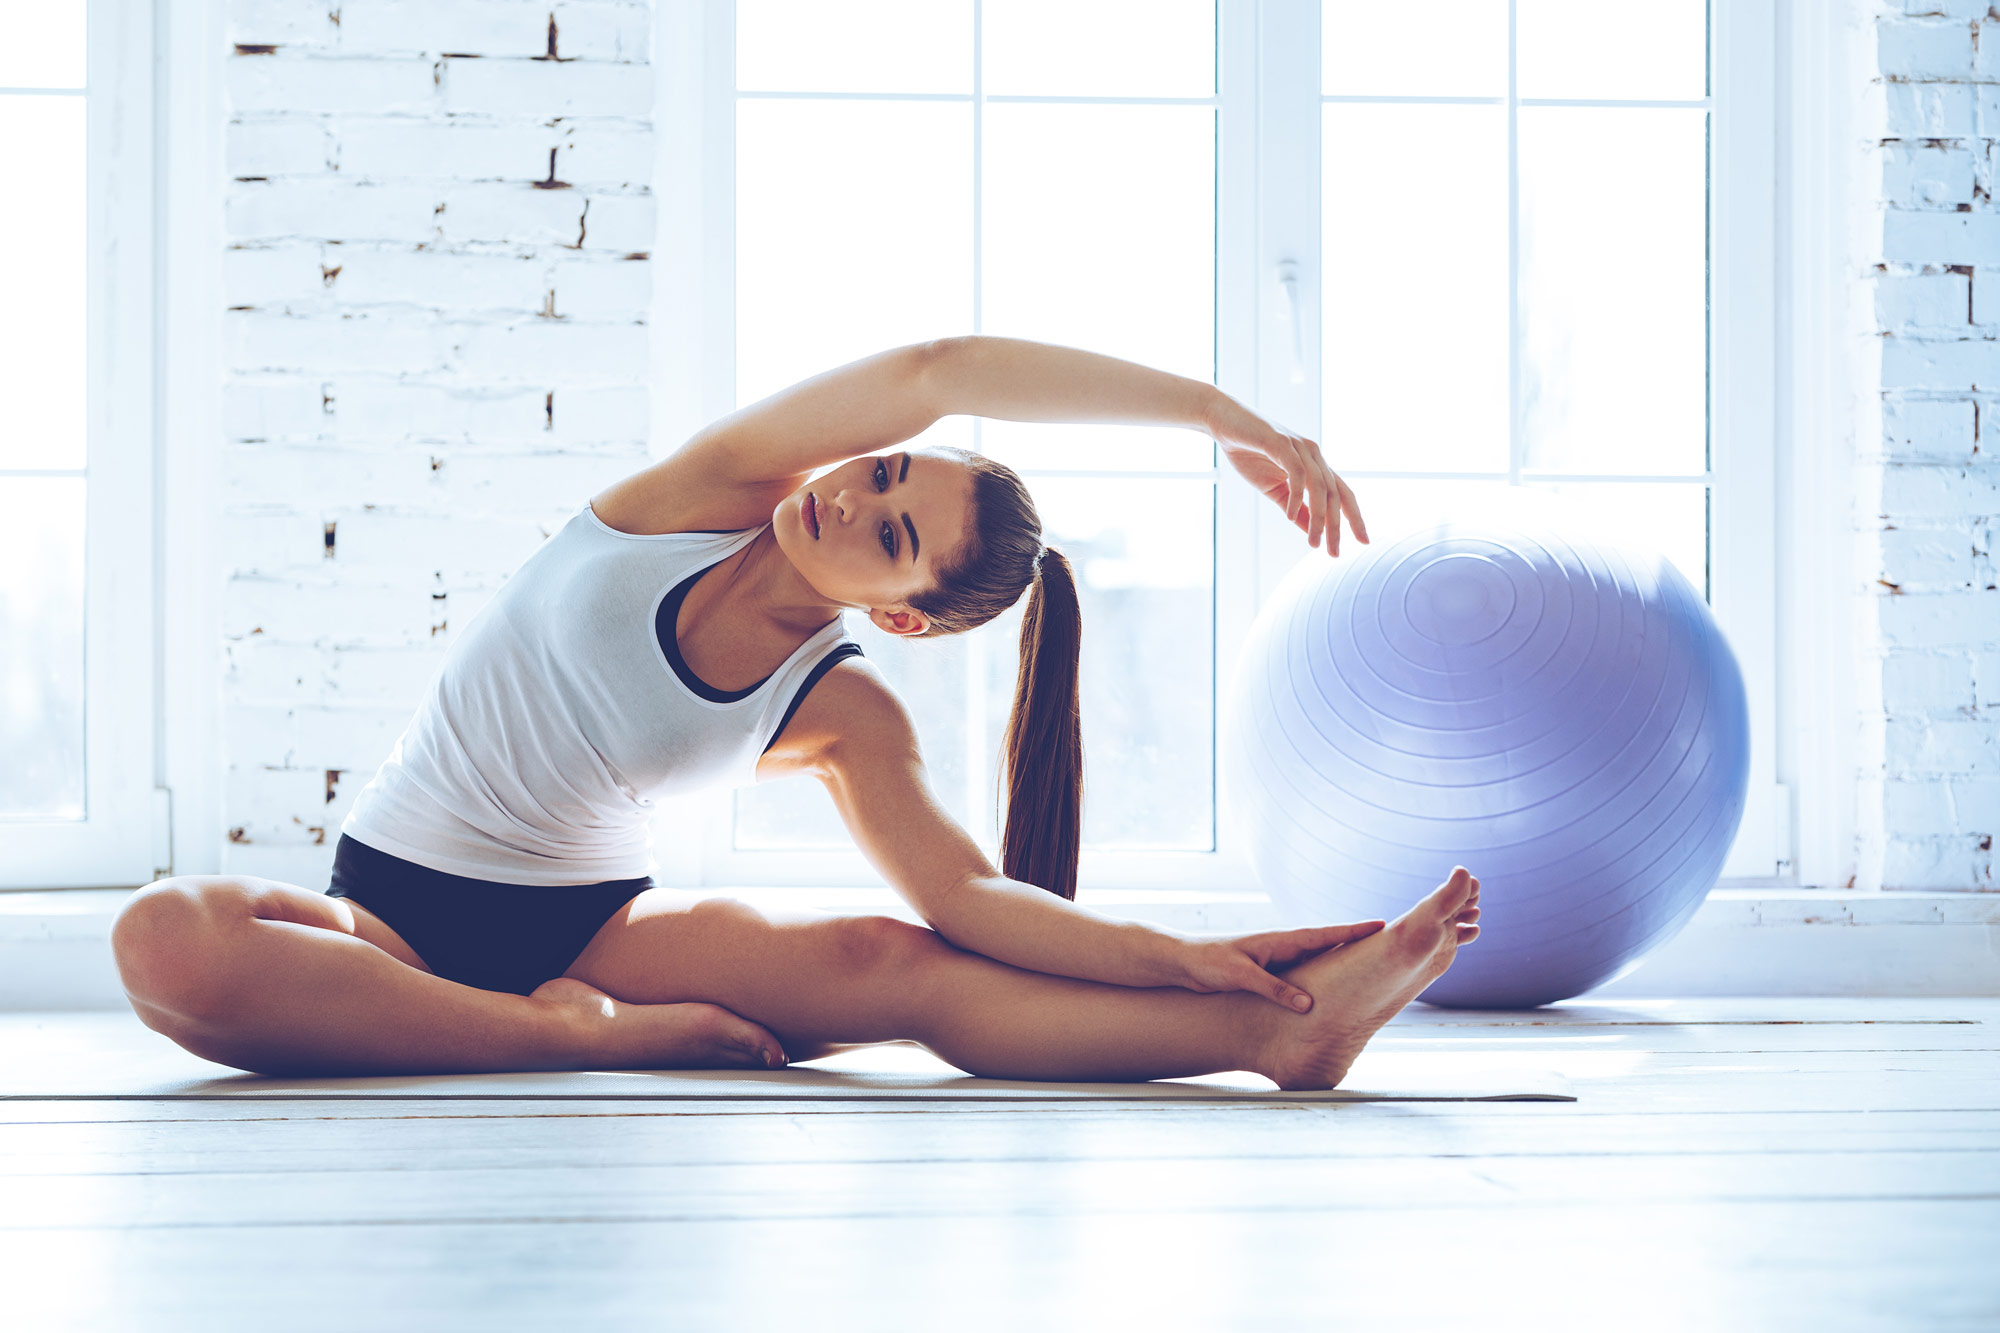 NEW PILATES CLASSES AT THE DANCE ACADEMY, LEWES - THROUGHOUT THE WEEK FOR A MIXTURE OF ABILITIES